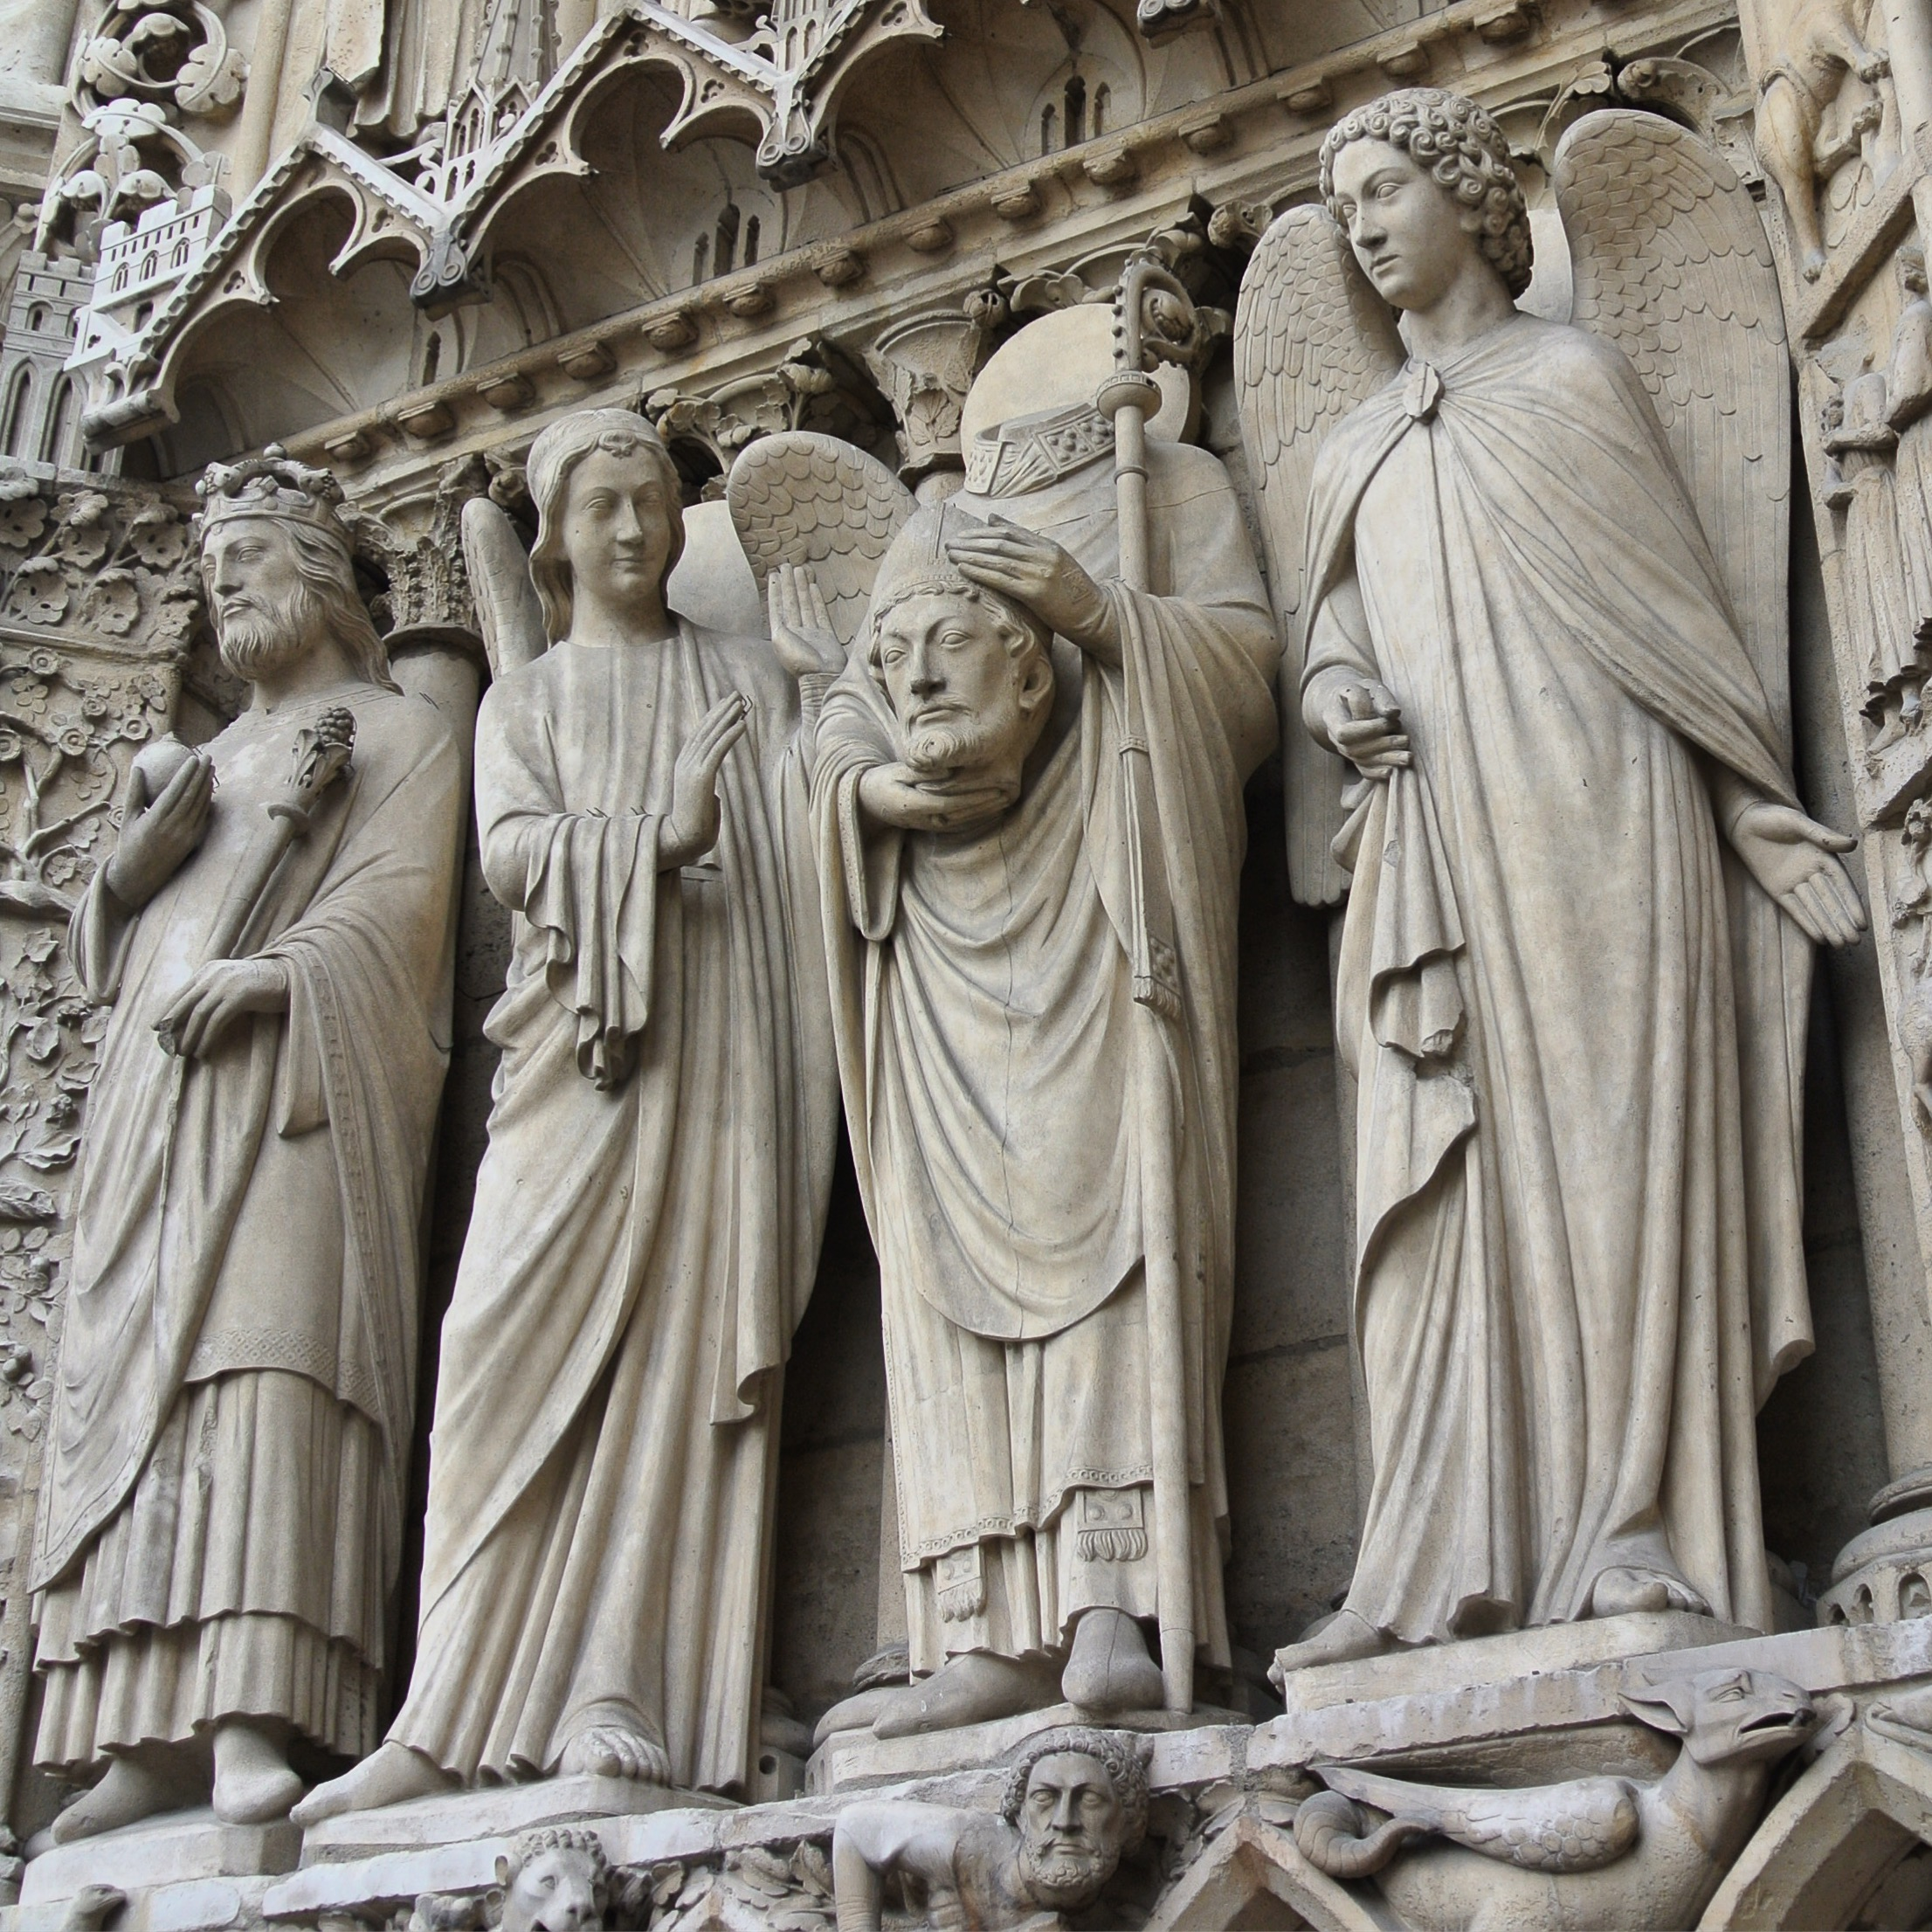 5.  The façade of Notre Dame in Paris has many interesting details, but perhaps none as unique as the sculpture in the left portal holding his head. The statue is of St. Denis, said to have picked his head up after being decapitated and walked six miles, while preaching a sermon of repentance the entire way. If it takes me 45 minutes on the treadmill at 6 miles per hour, he would have walked an hour plus!